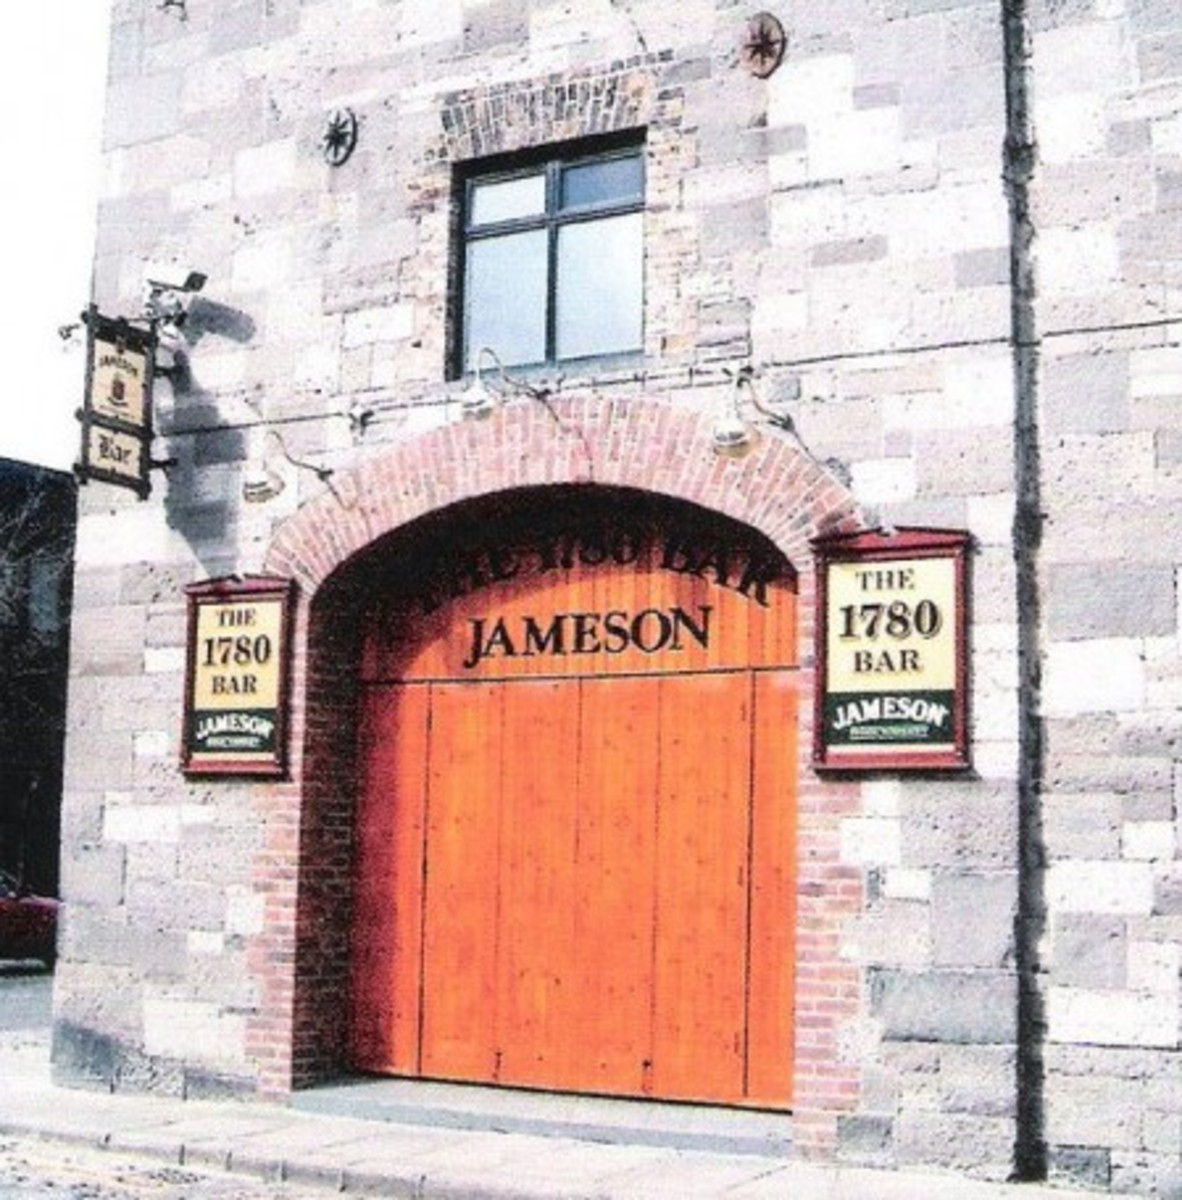 The Jameson Museum in Dublin Ireland